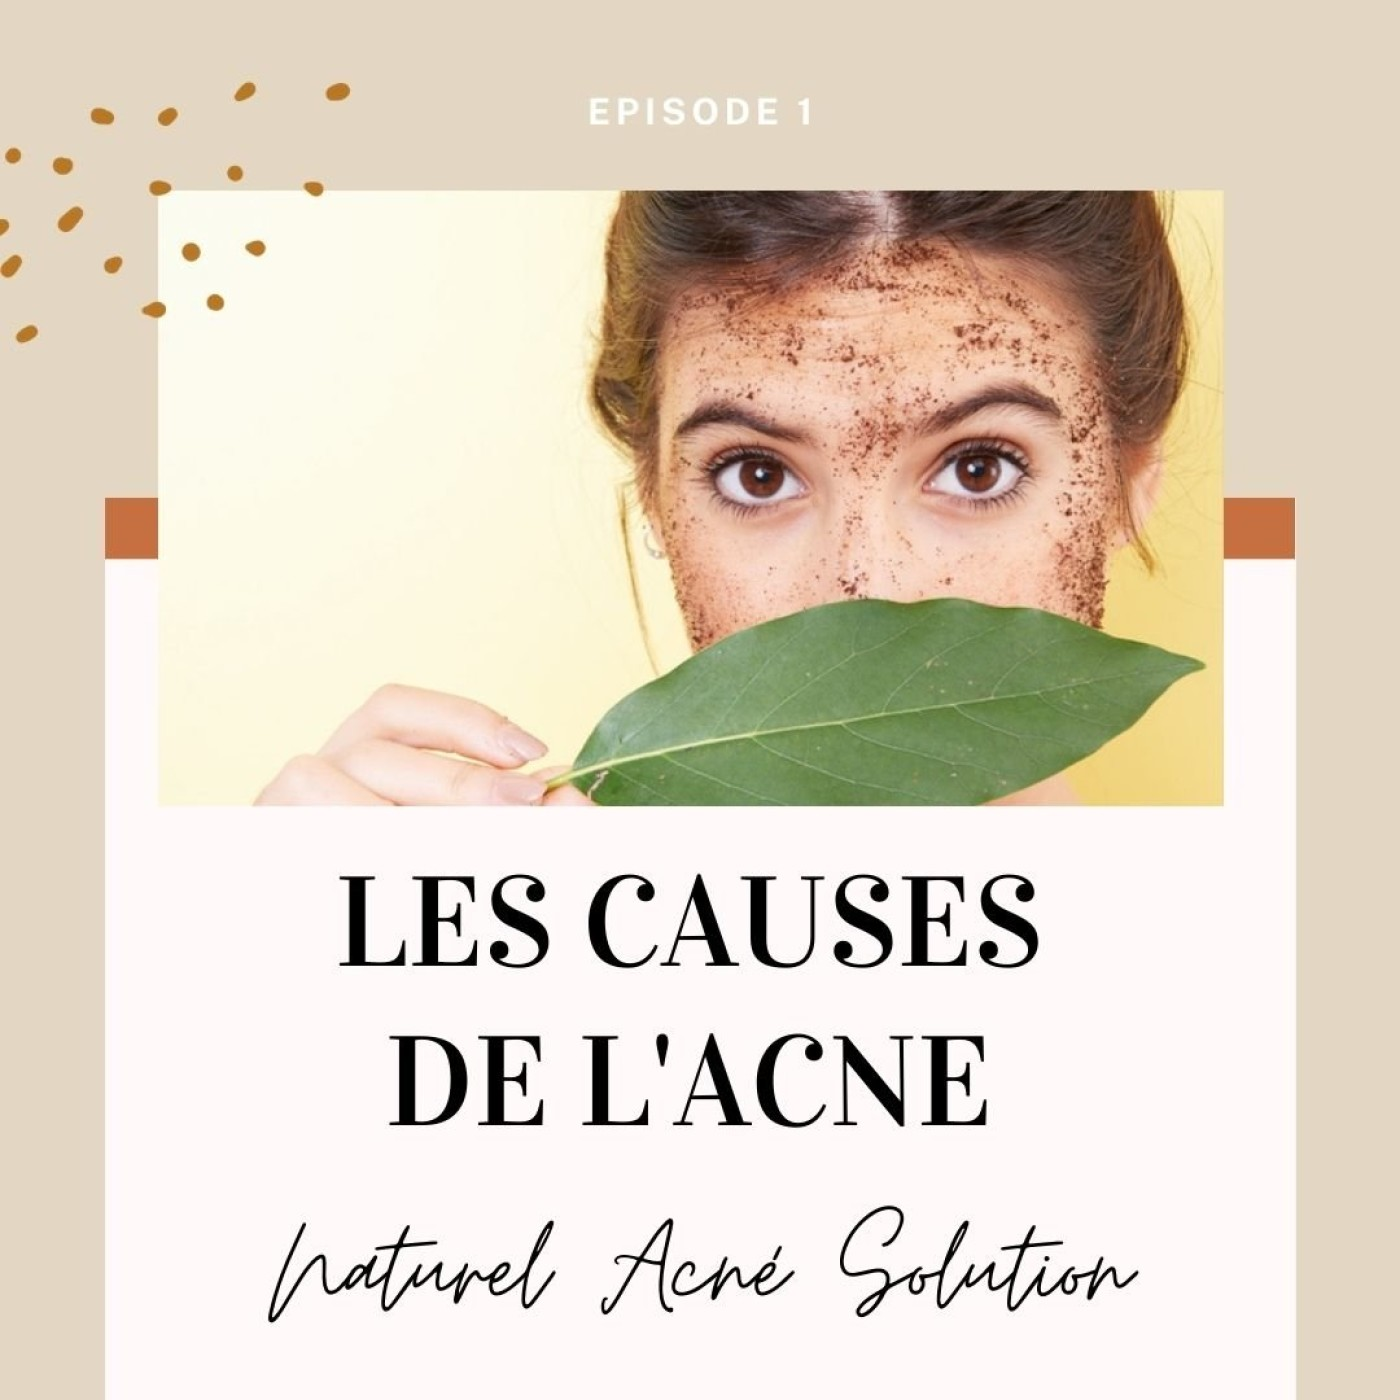 Naturel acné solution - les causes de l'acné